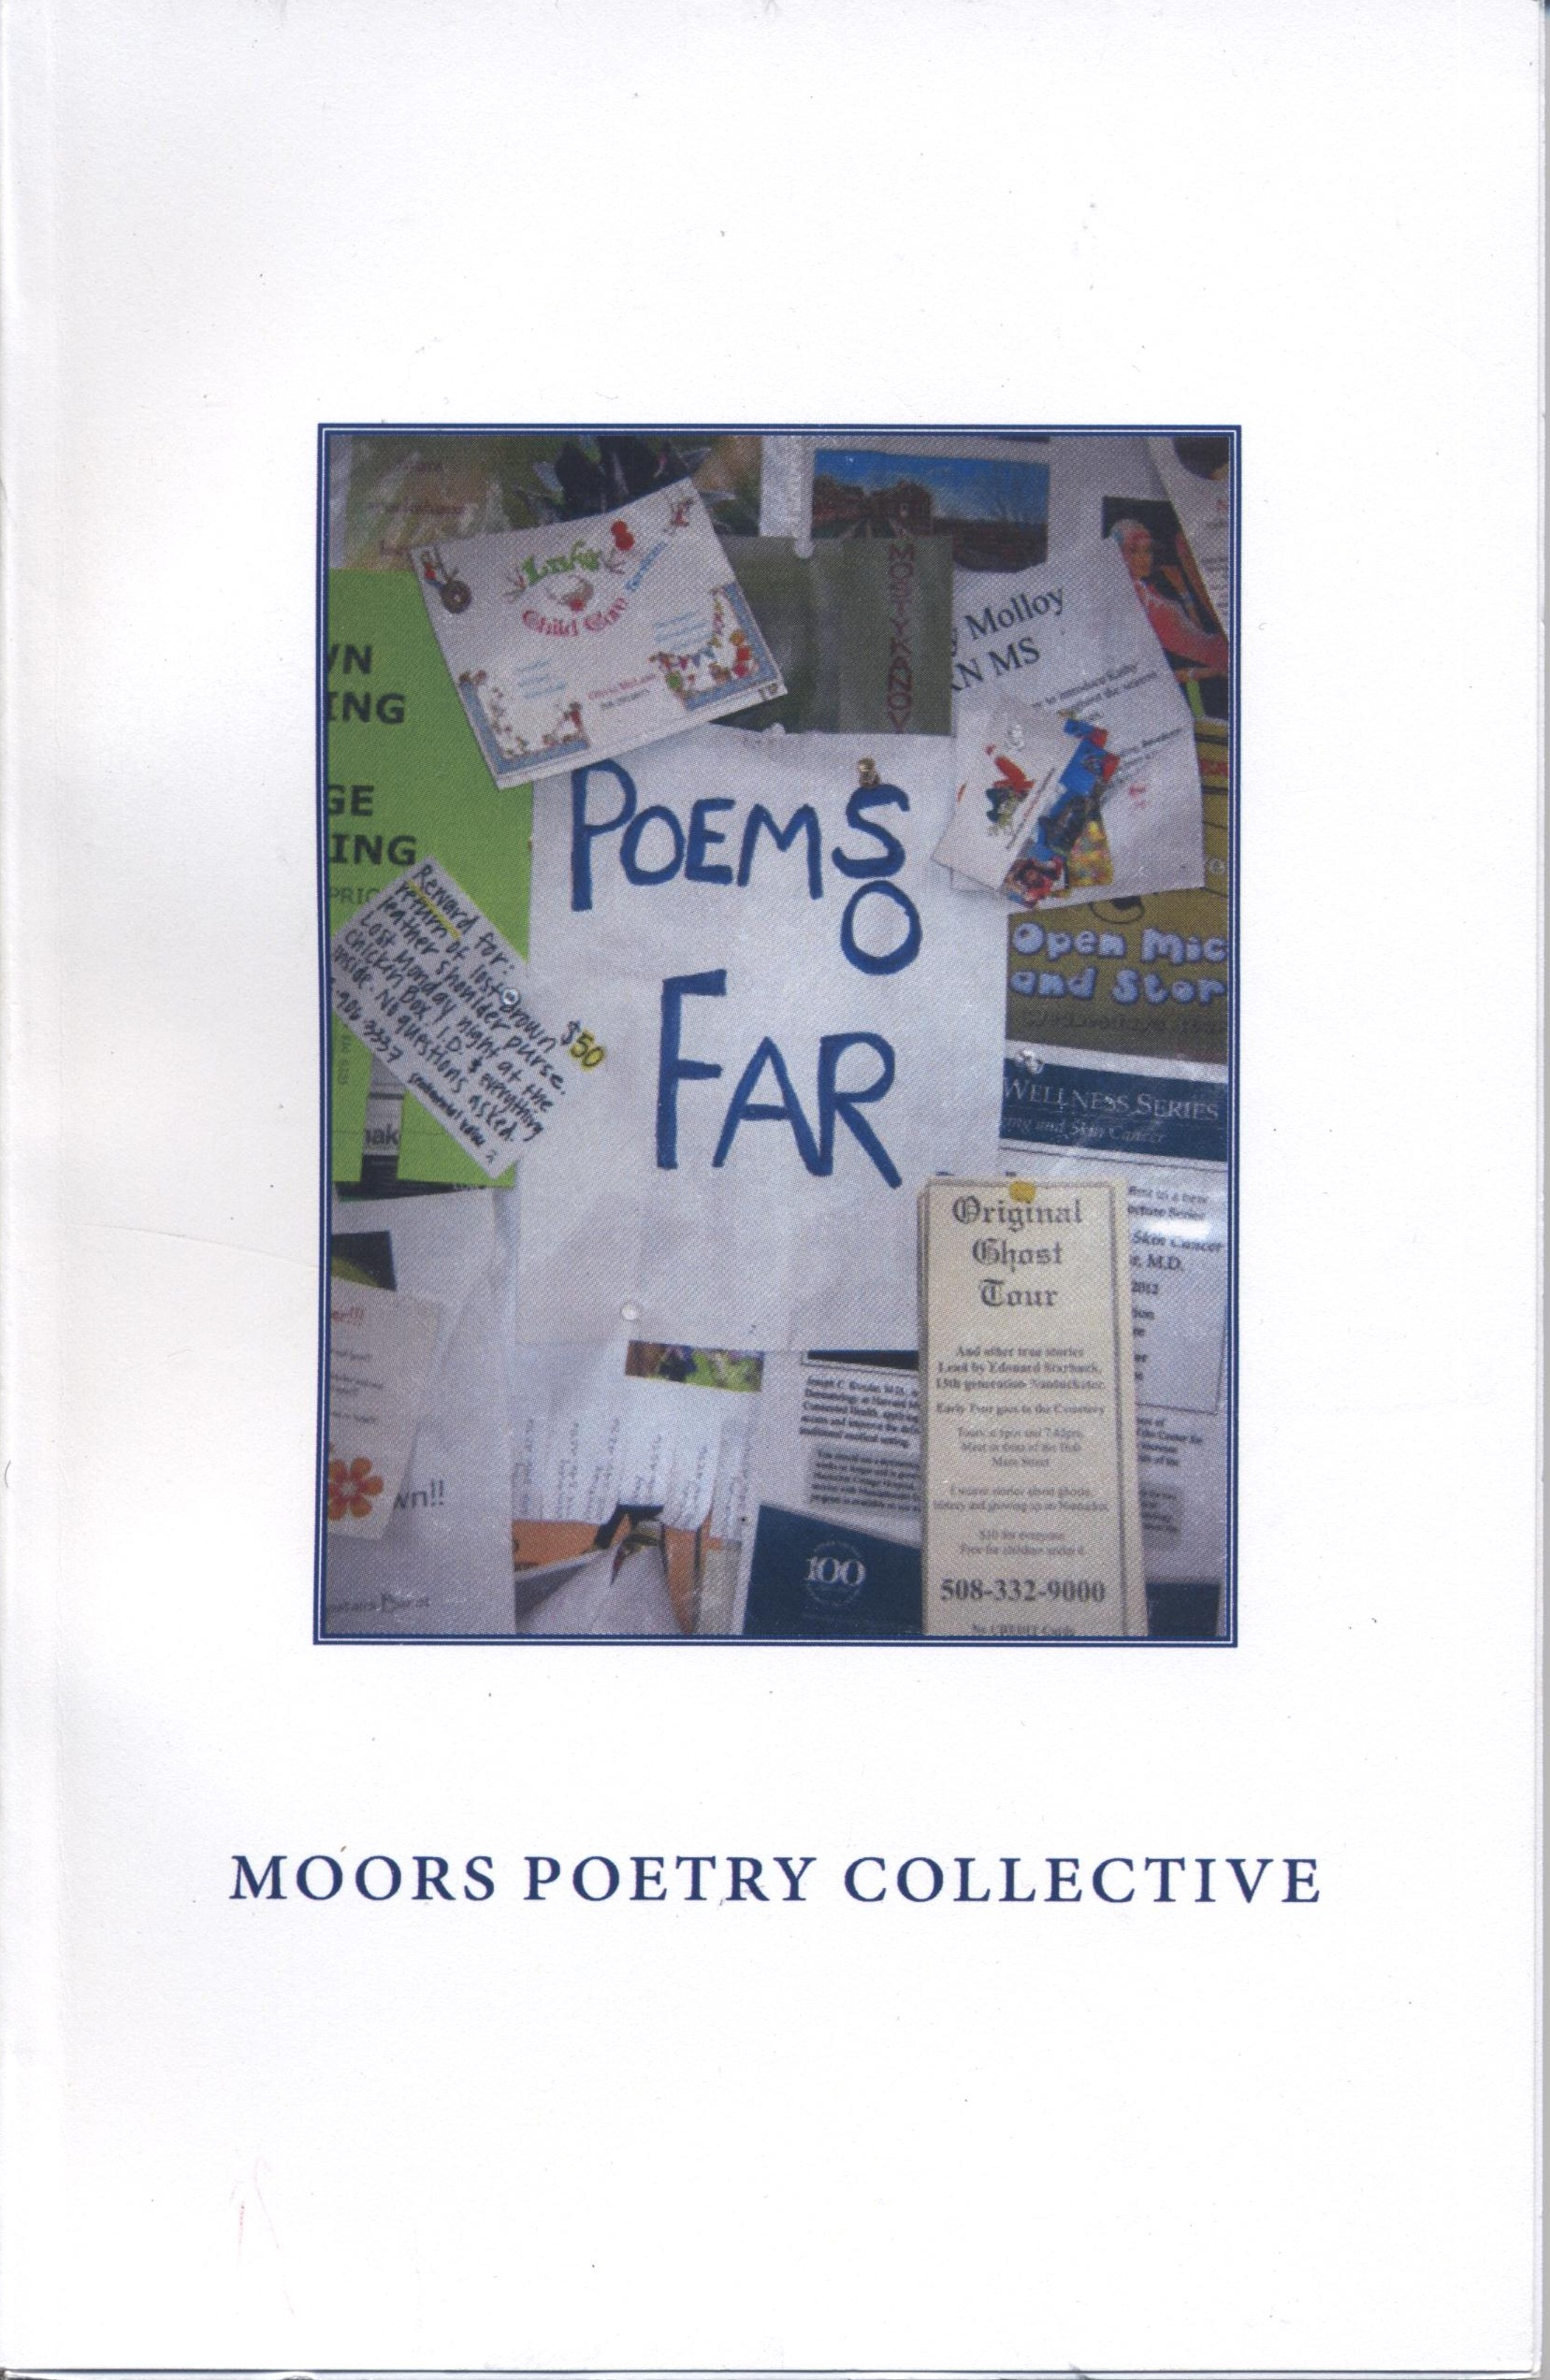 Poems So Far by the Moors Poetry Collective